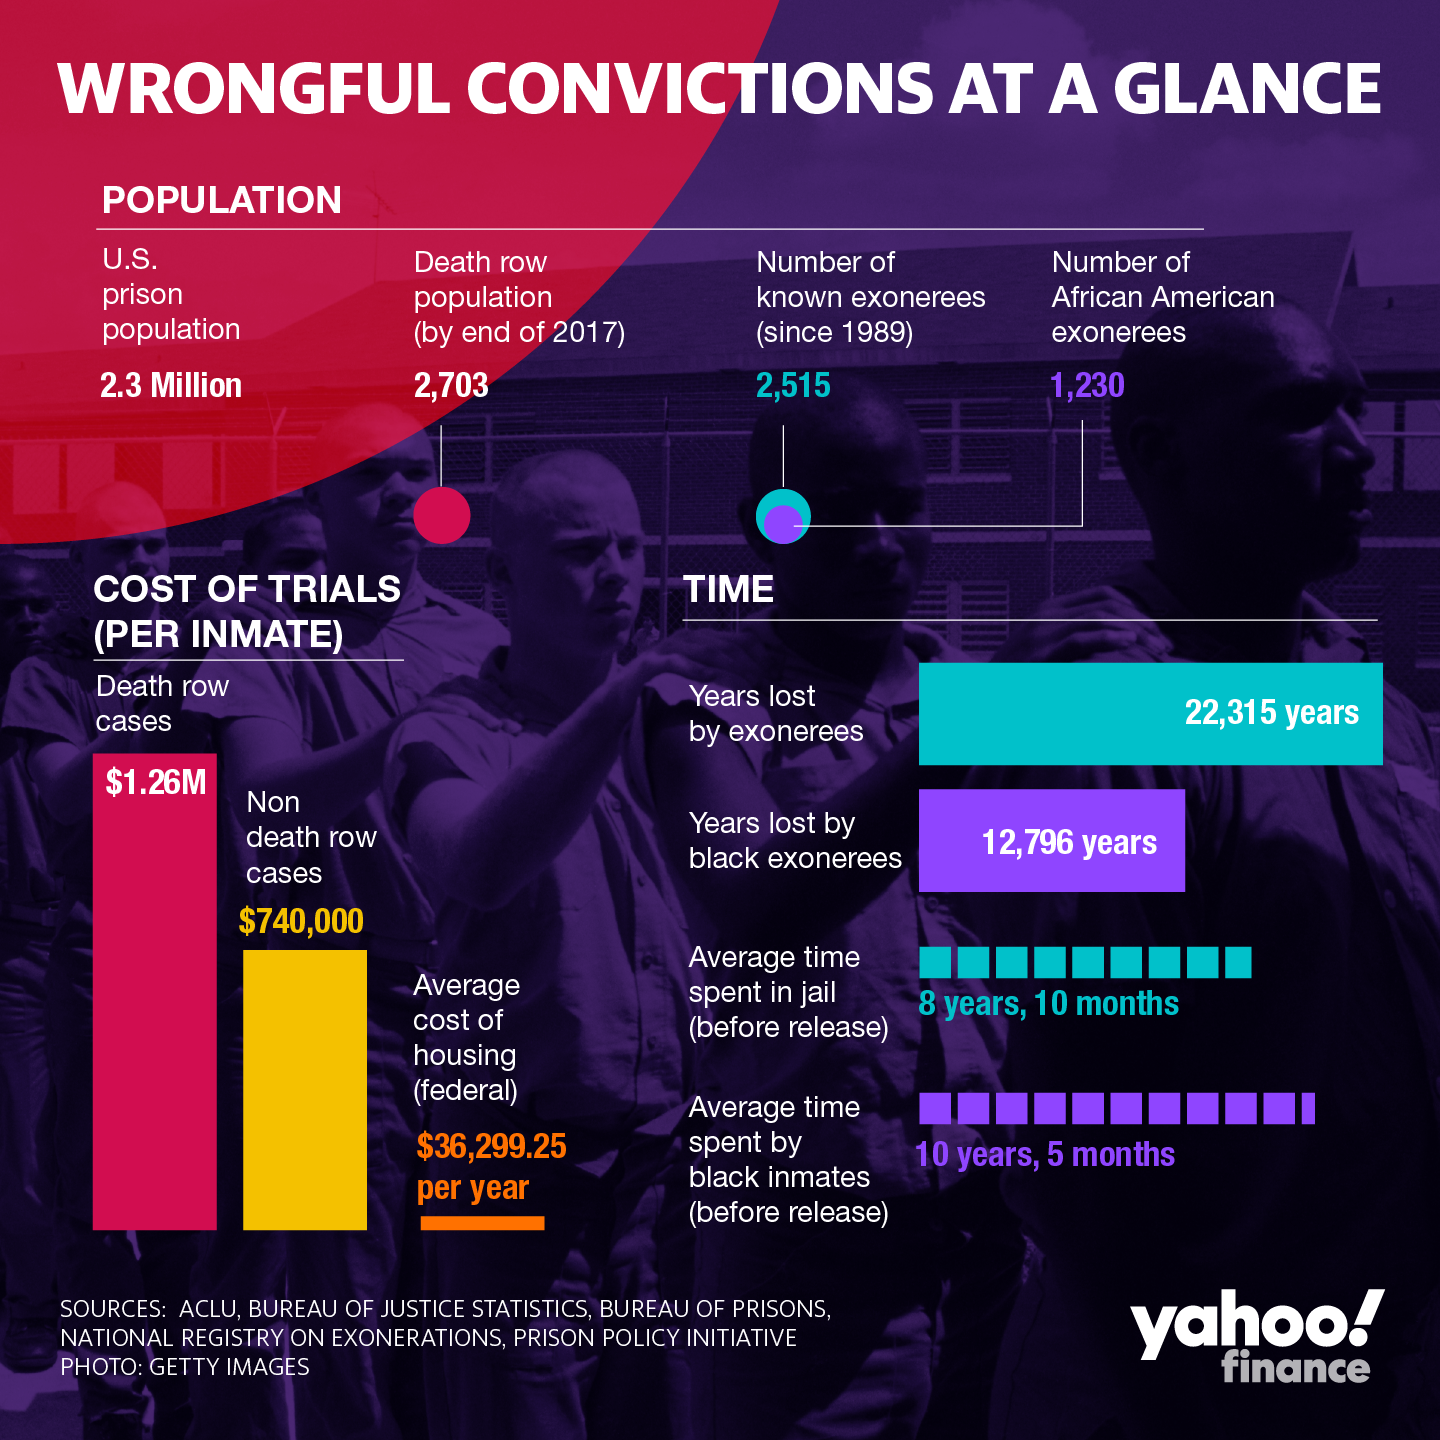 U.S. taxpayers spent over $4 billion incarcerating innocent people